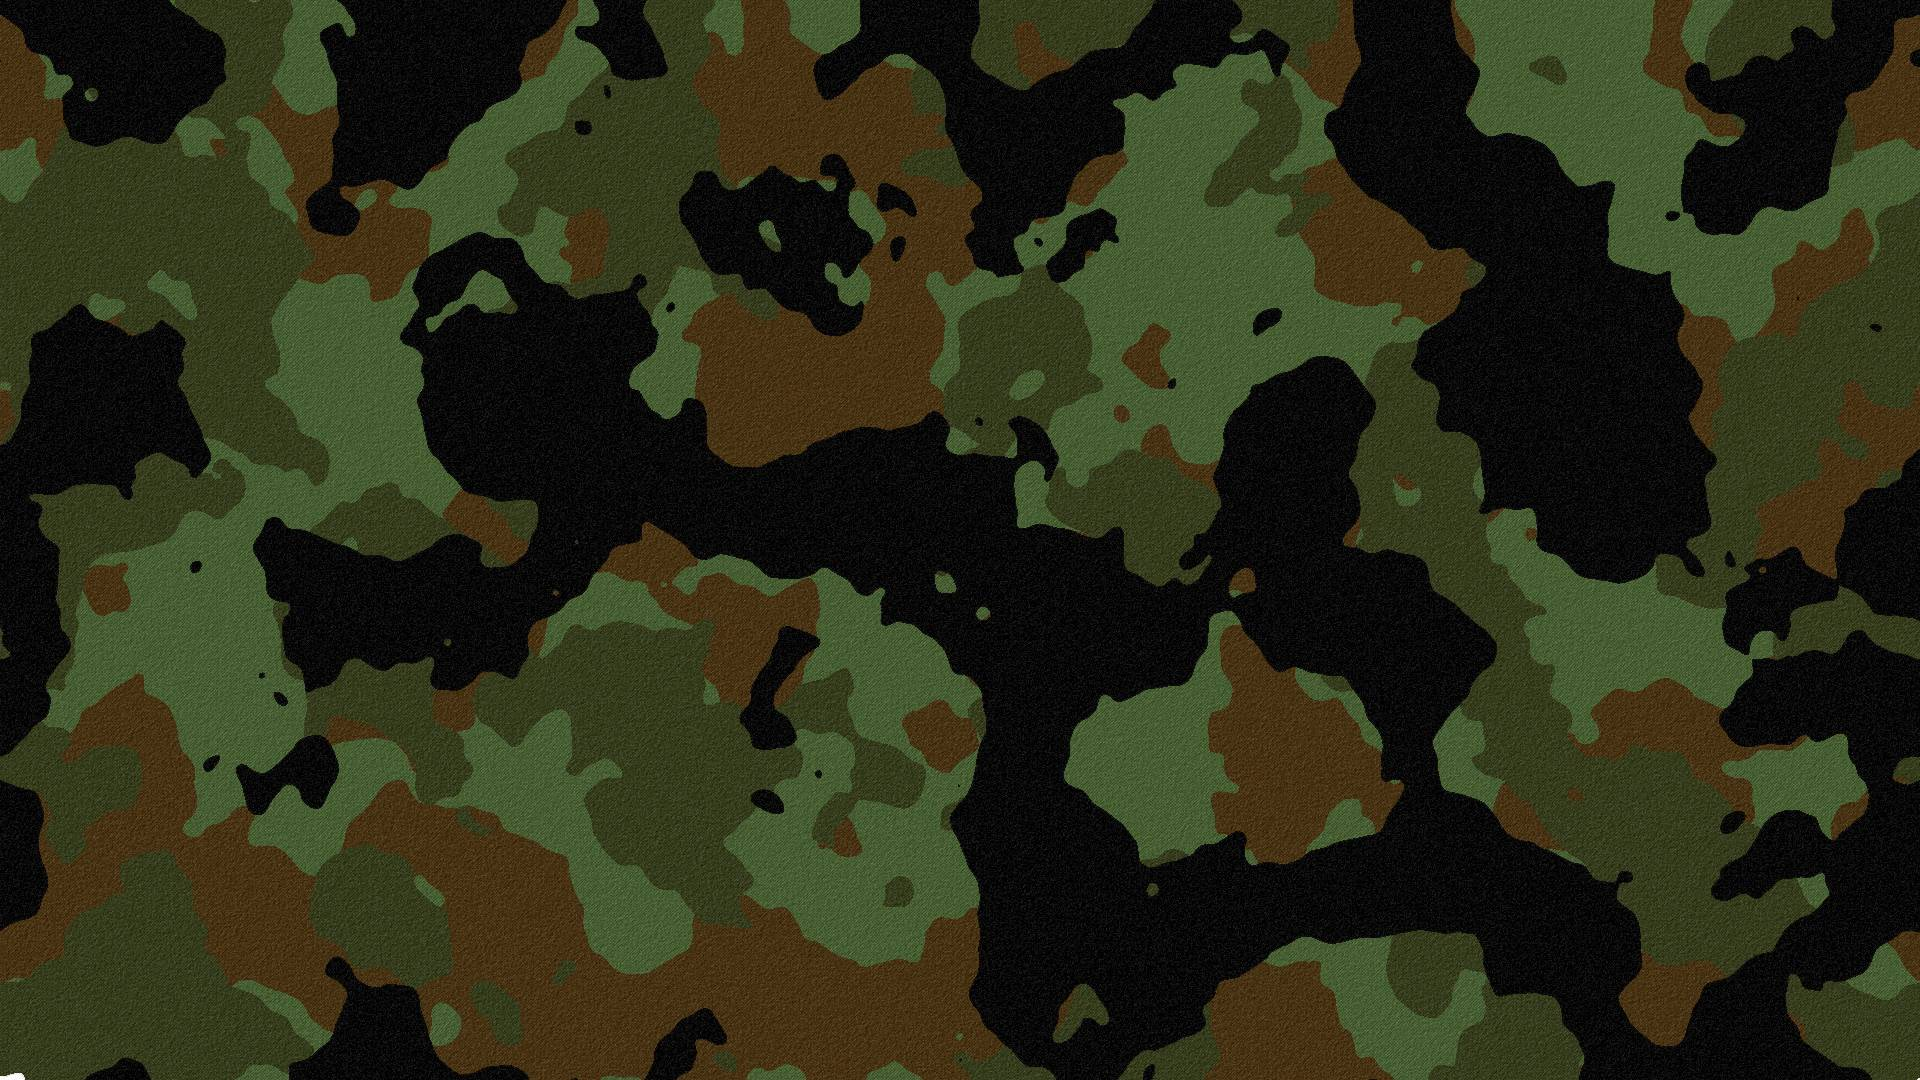 camo desktop wallpaper full screen - photo #2